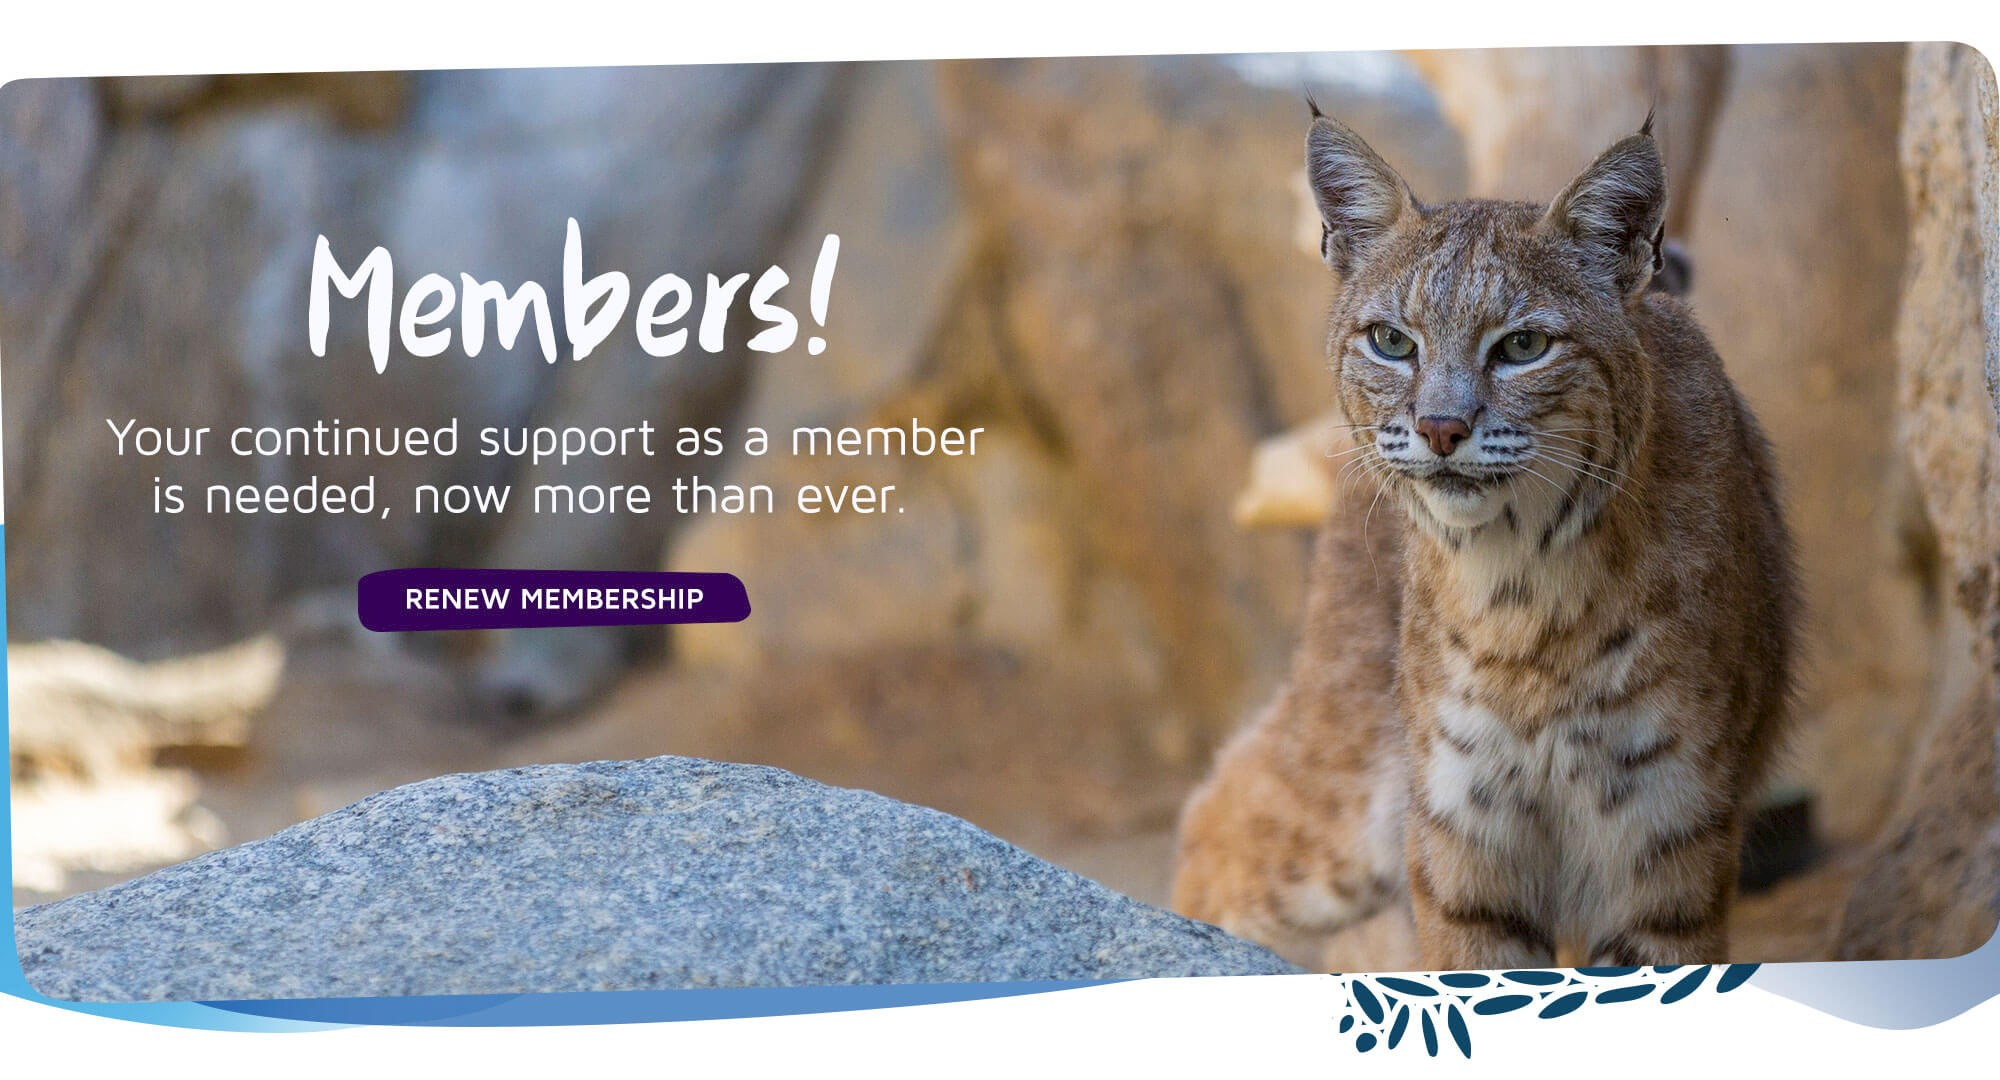 Members! Your continued support as a members is needed, now more than ever. Click to renew.